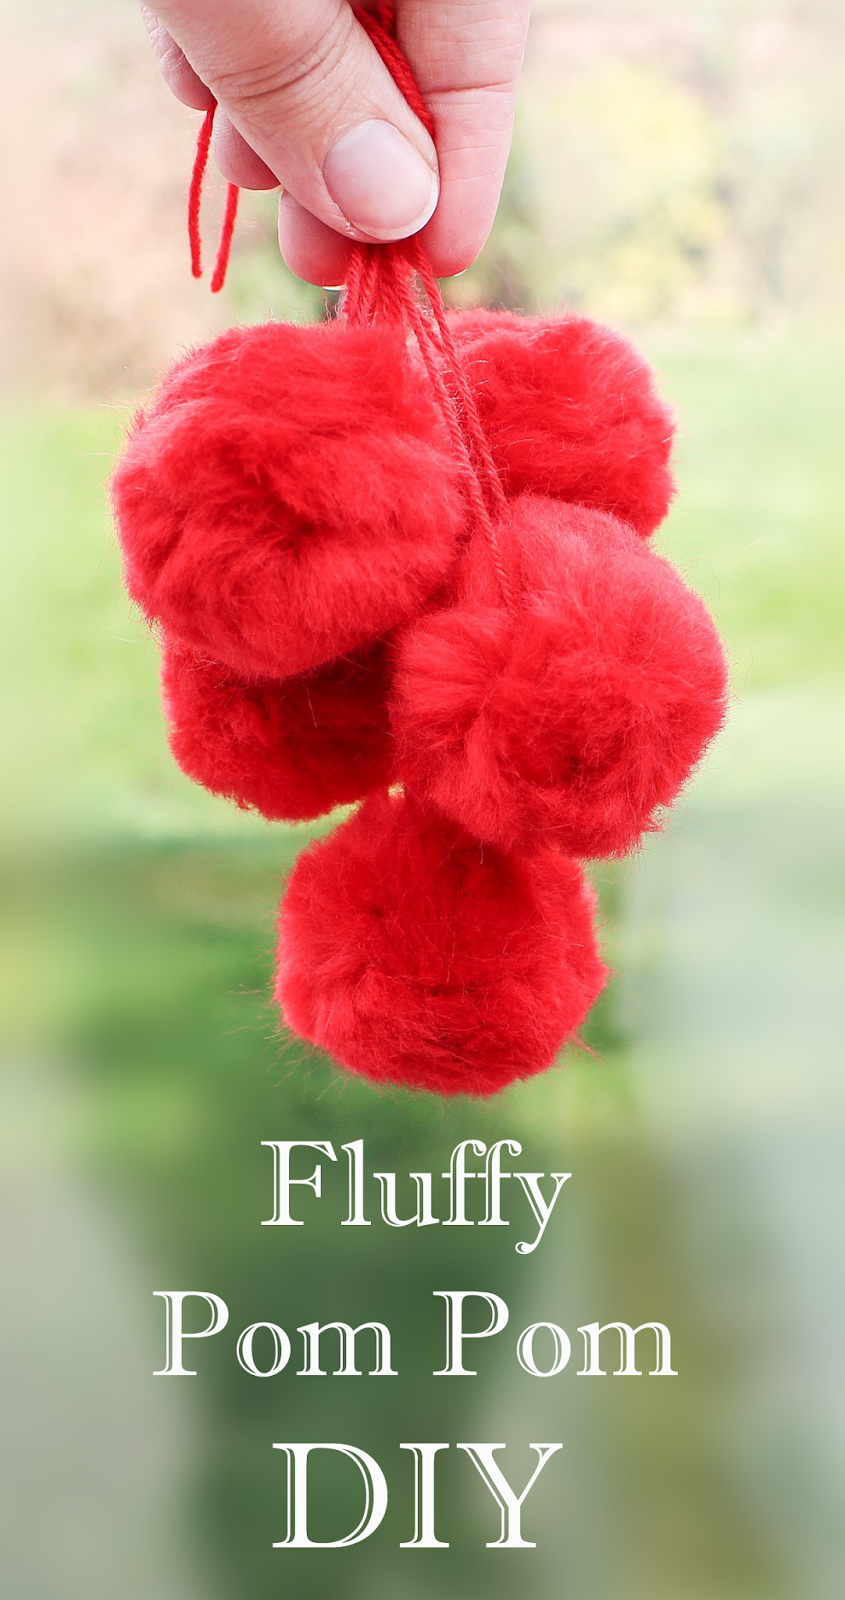 Craft pom poms in bulk - How To Make The Quickest Fluffiest Pom Poms Ever Craft Me Happy How To Make The Quickest Fluffiest Pom Poms Ever